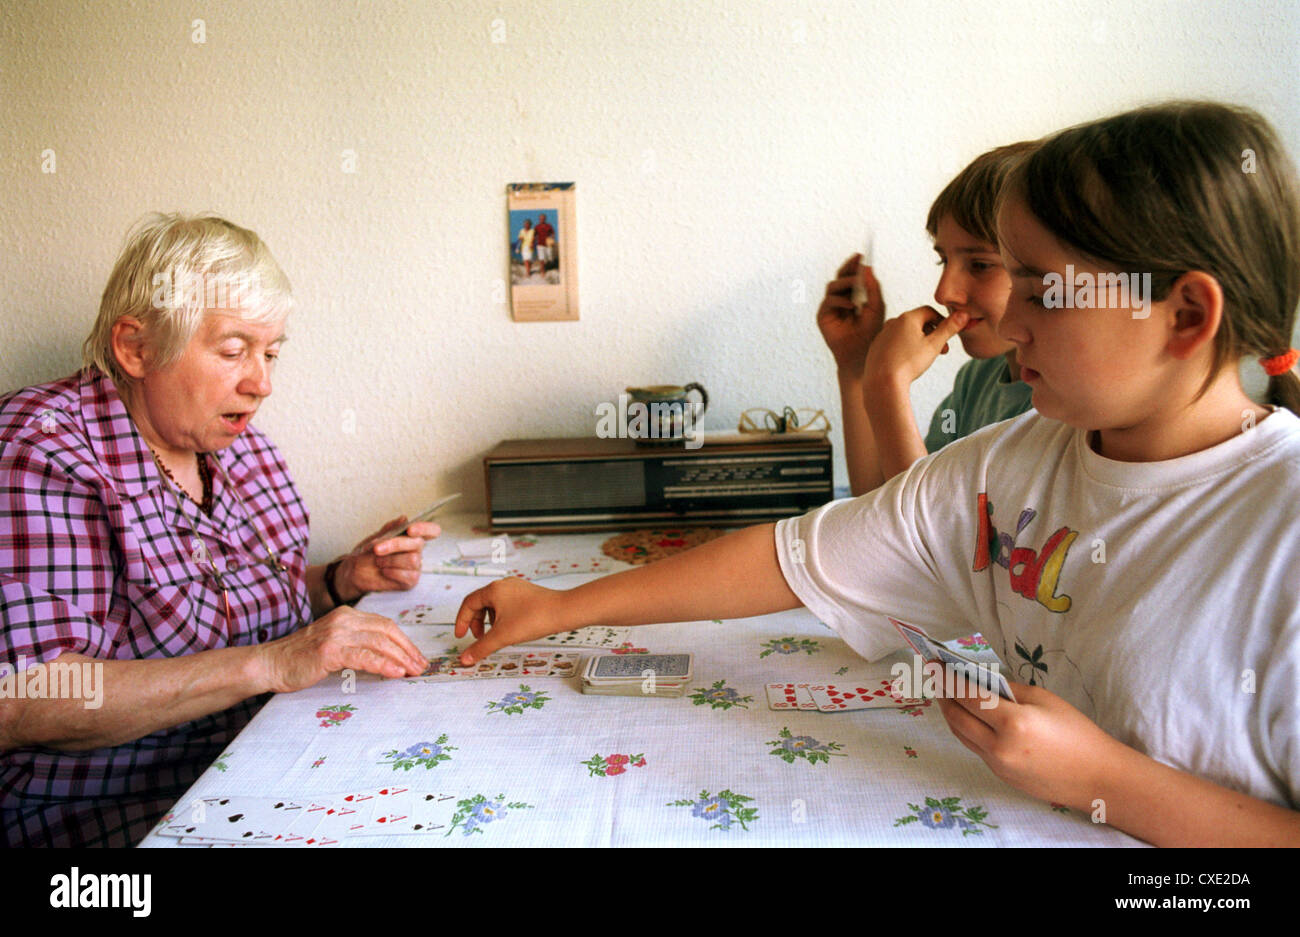 Berlin, a grandmother and granddaughter playing with grandchildren cards at the kitchen table Stock Photo